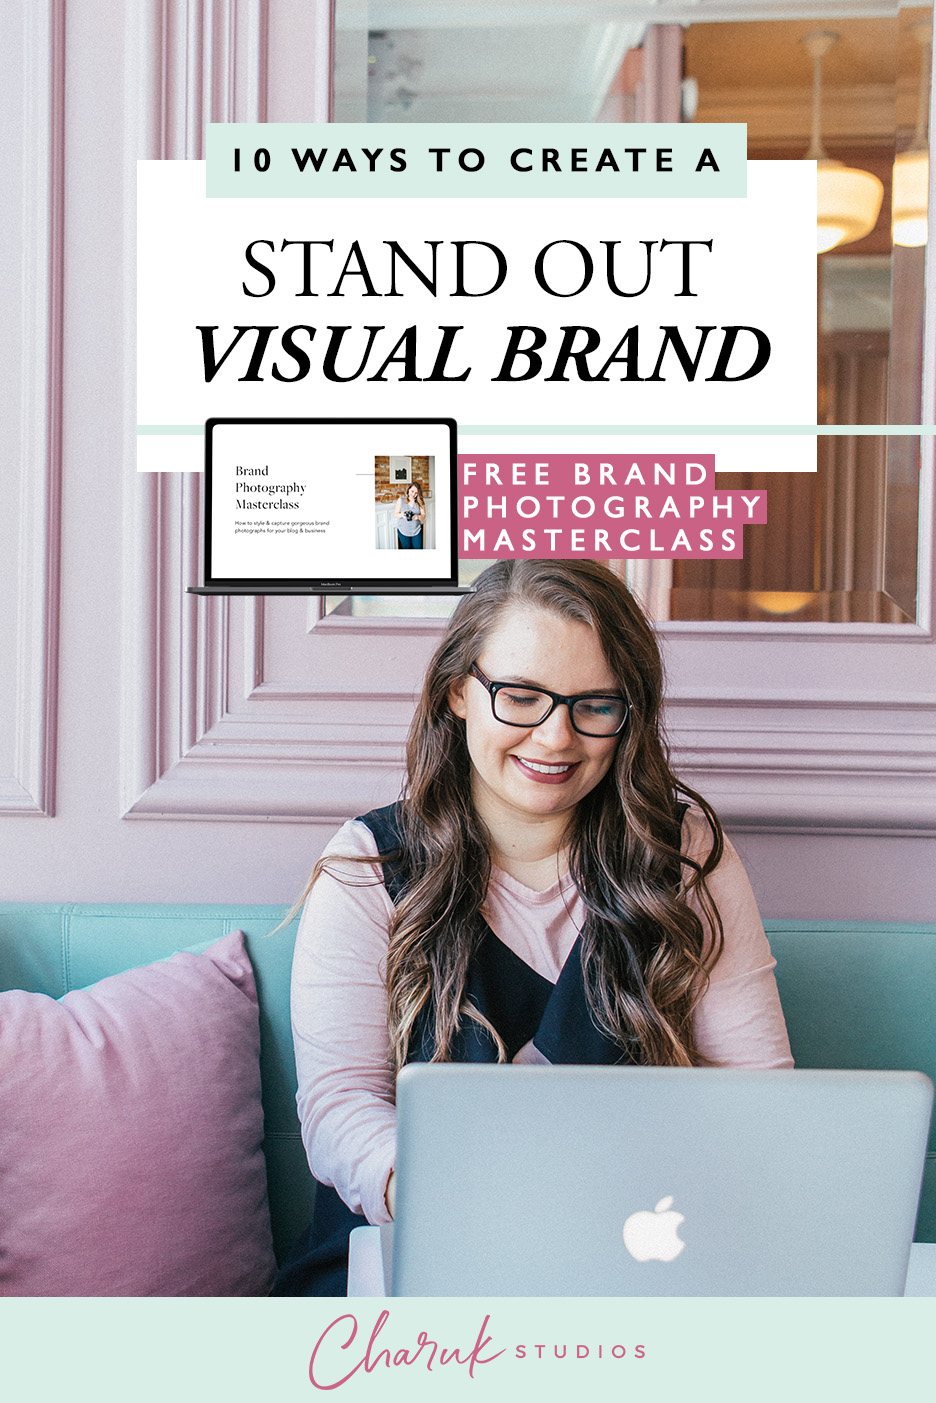 10 Steps to Create a Stand Out Visual Brand by Charuk Studios